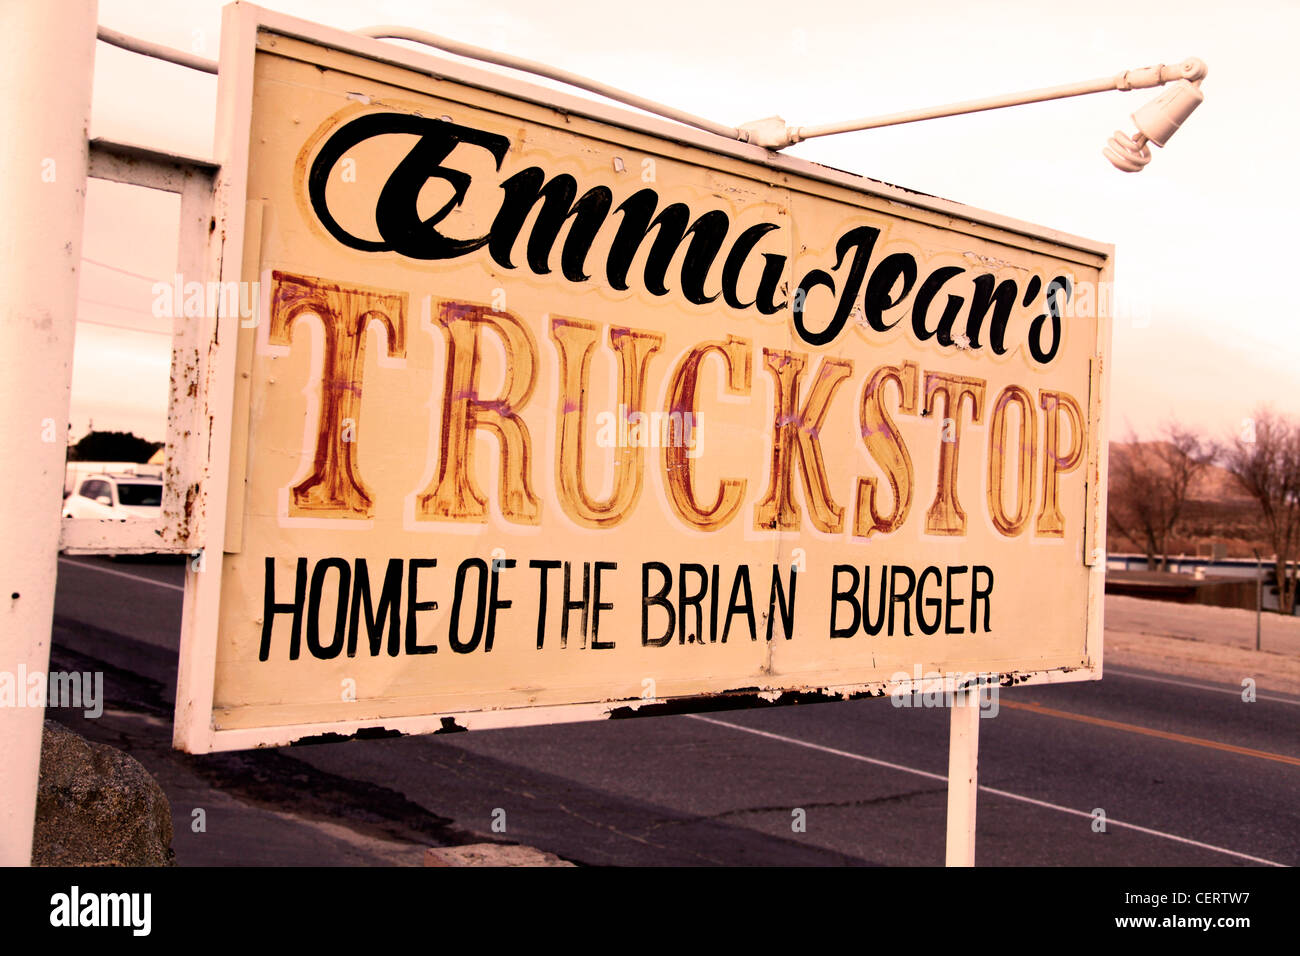 TRUCK STOP SIGN,ROUTE 66,CALIFORNIA - Stock Image